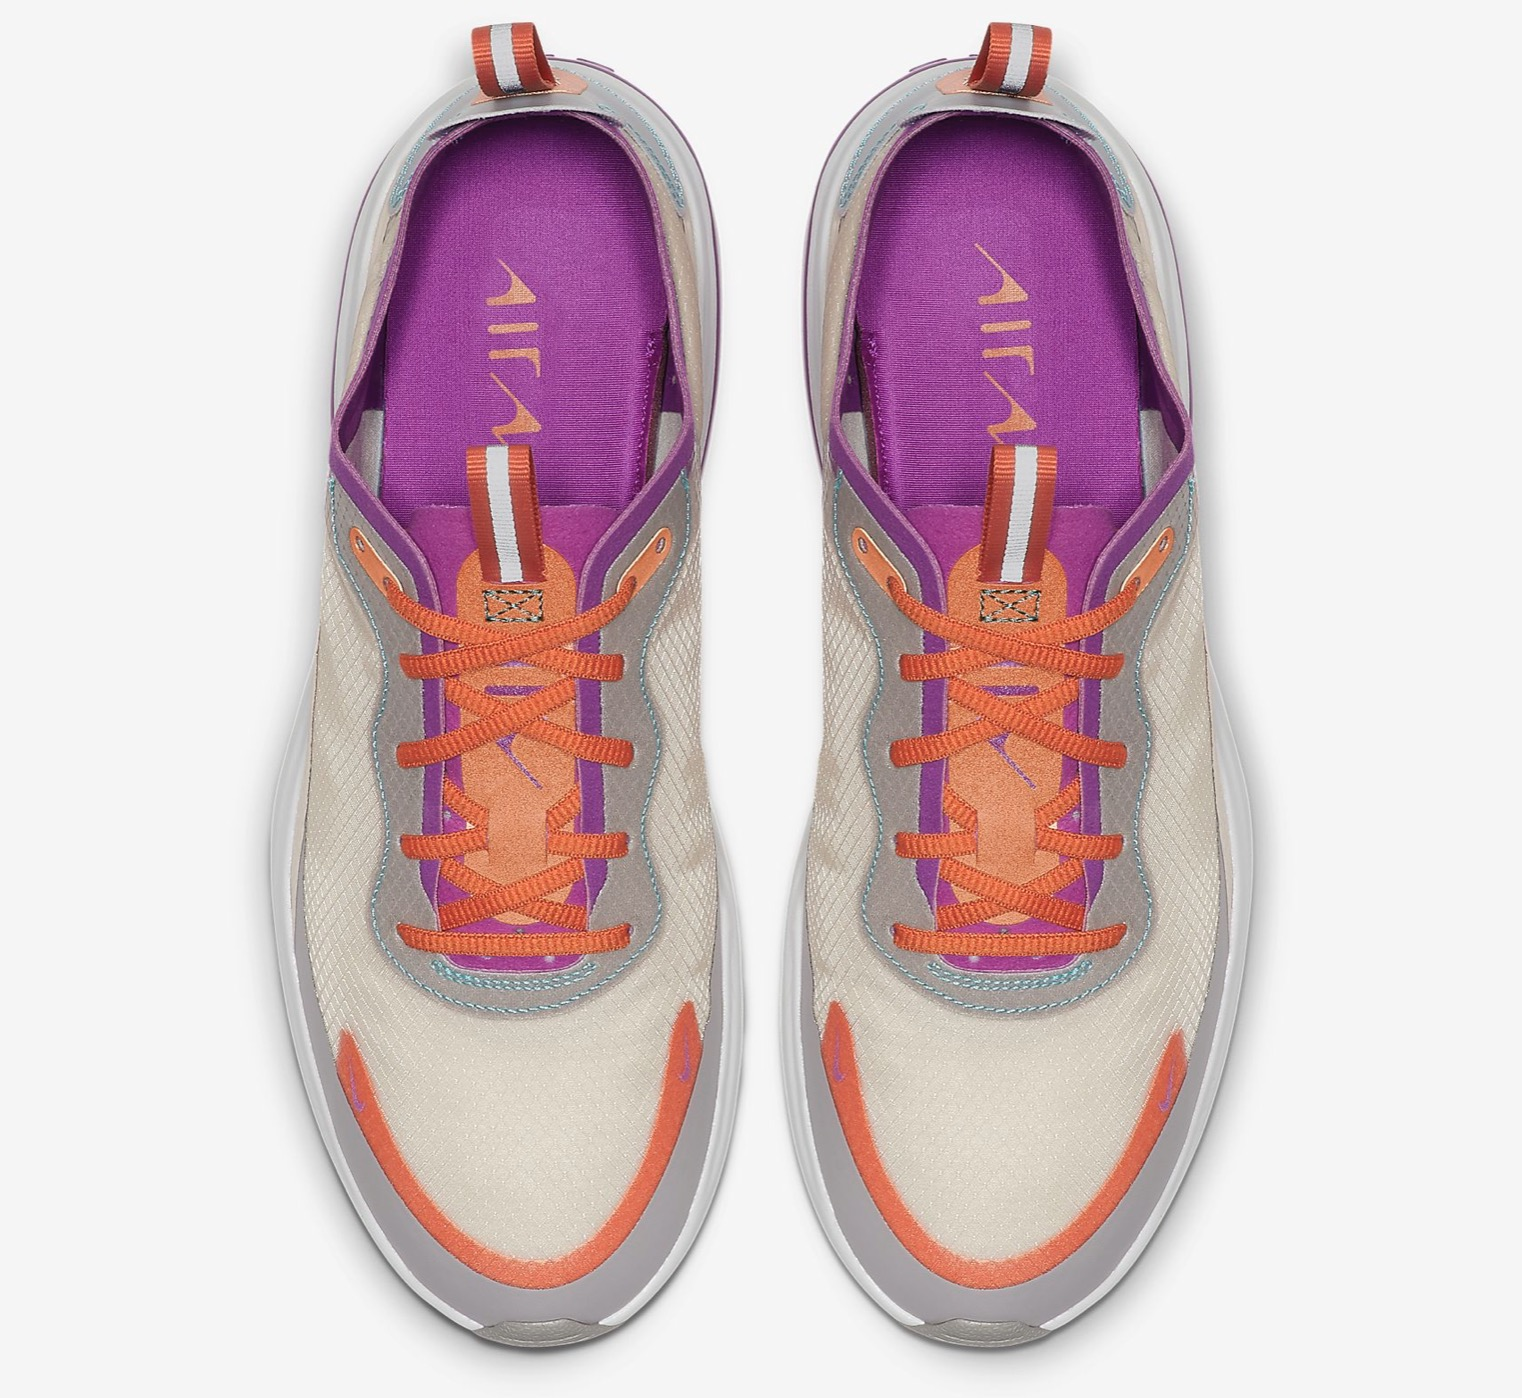 Another Nike Air Max Dia Colourway Has Been Unveiled In Hyper Violet 4